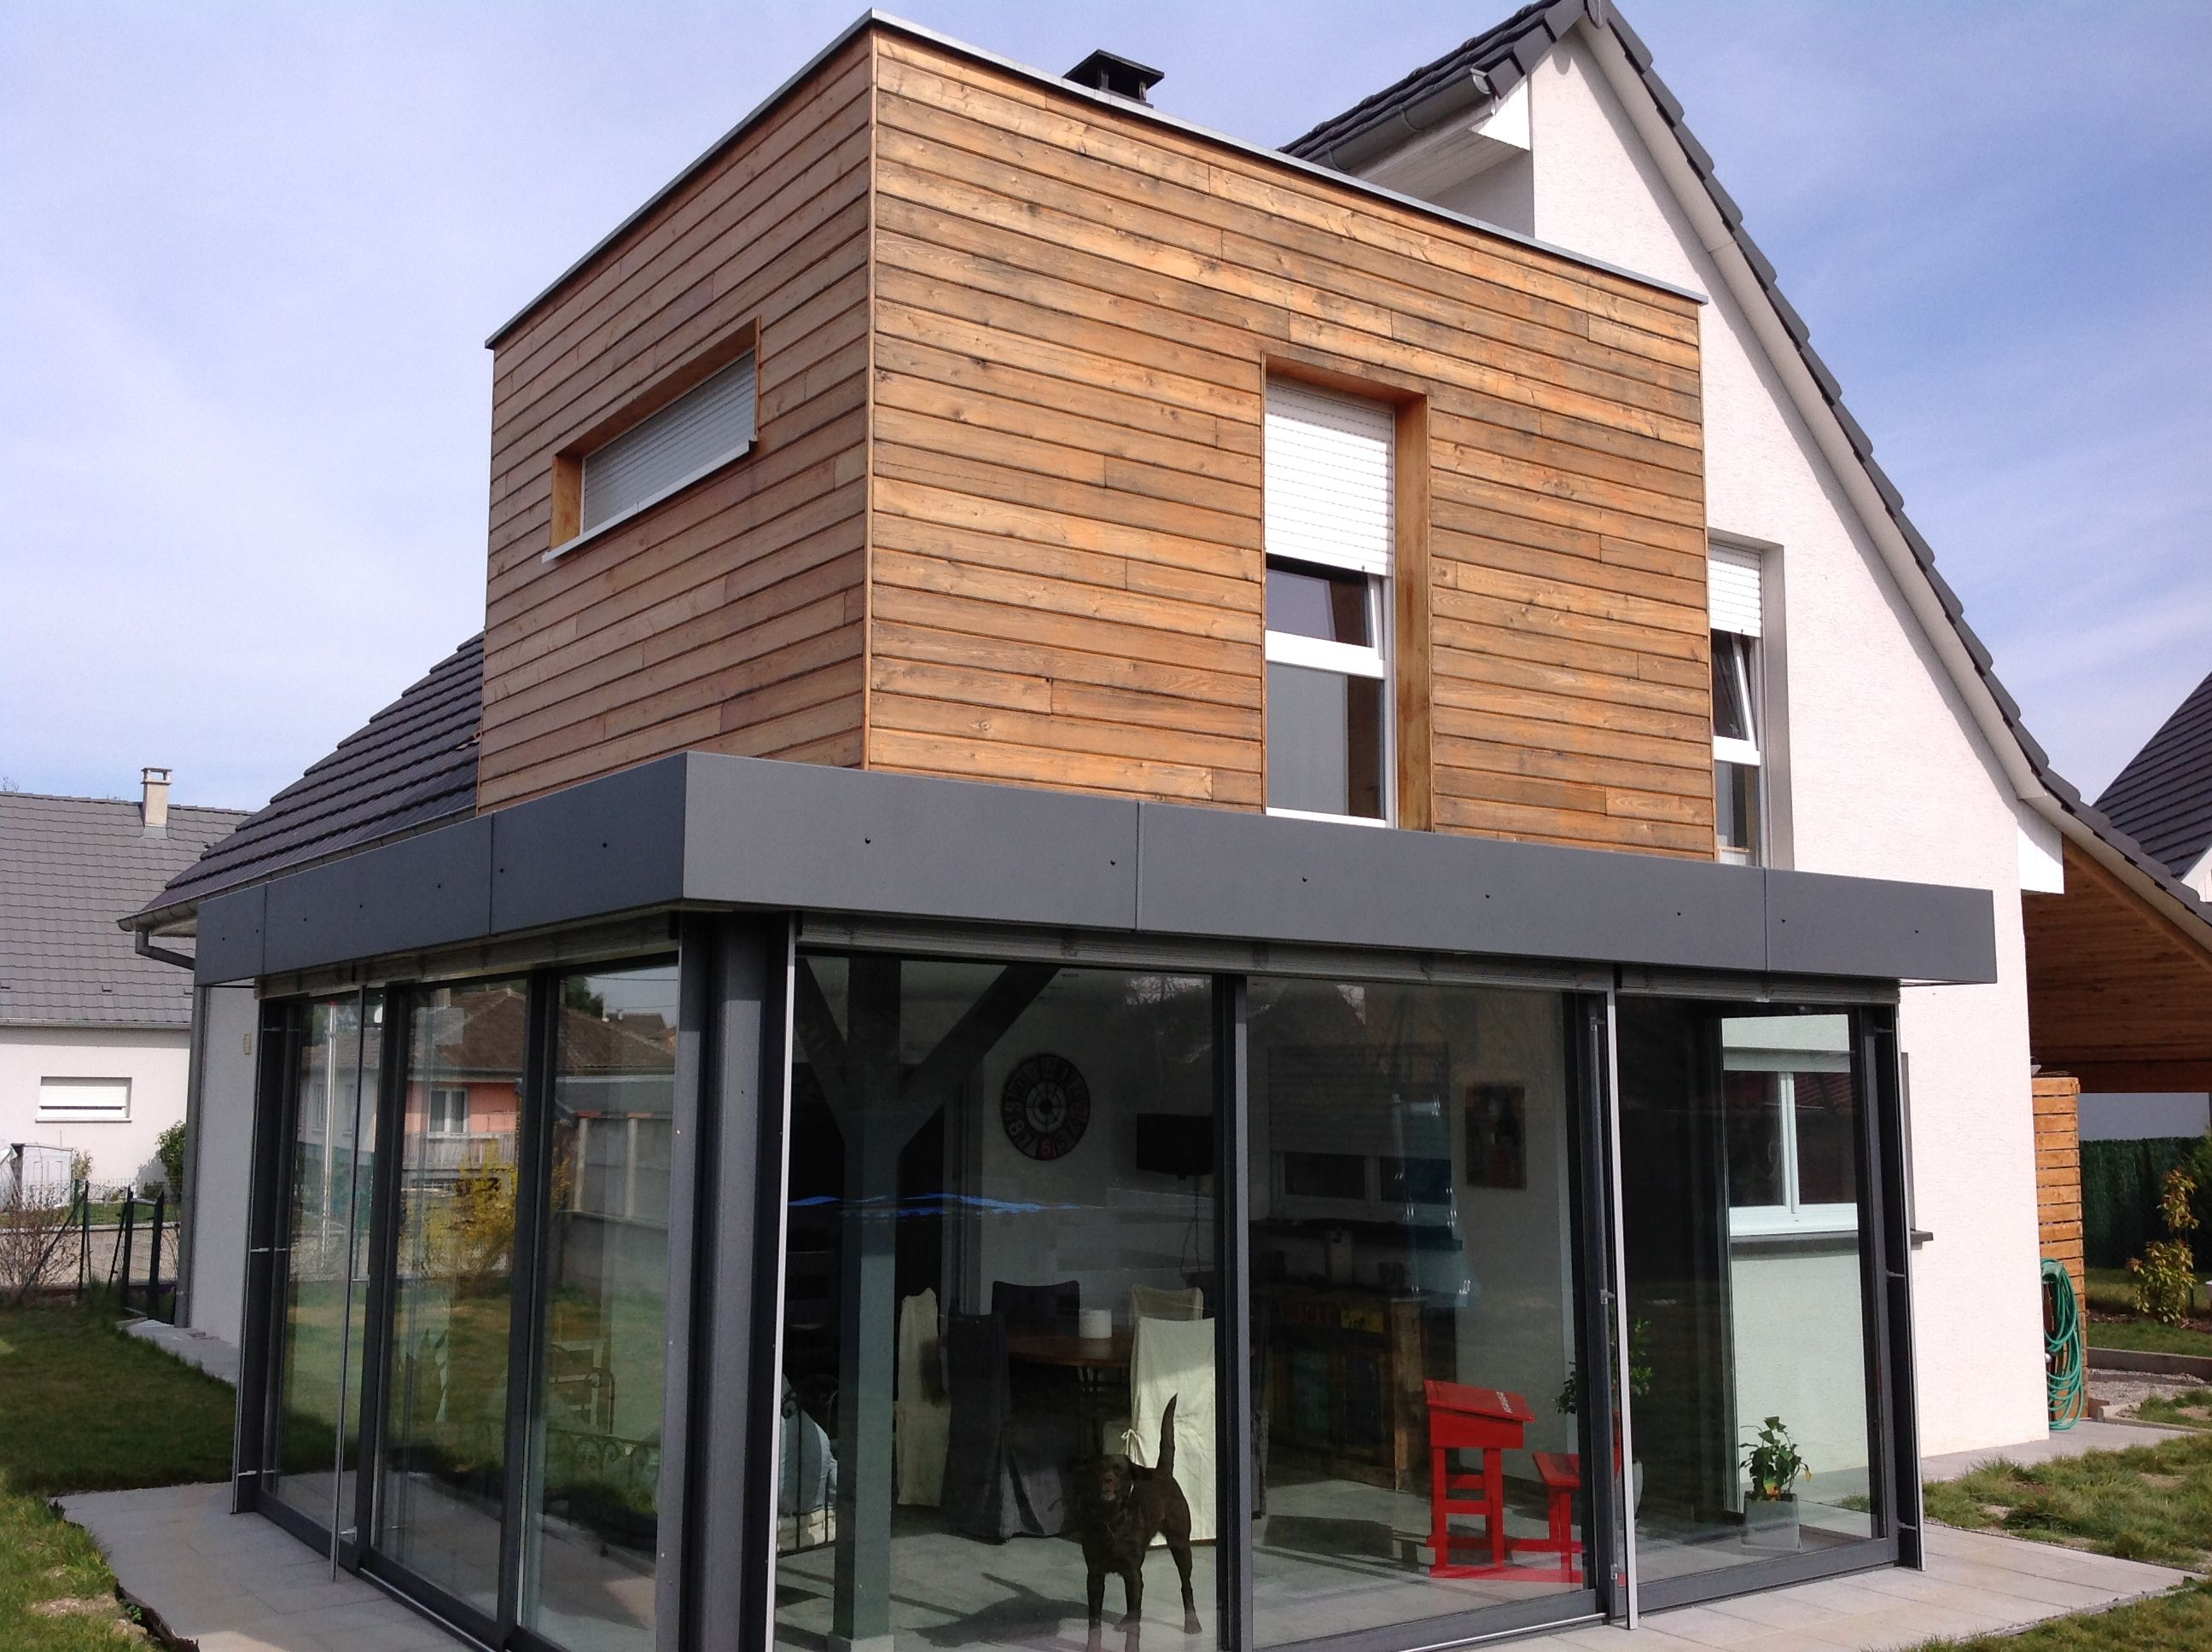 Extension terrasse avec tage en ossature bois veranda for Extension maison 56